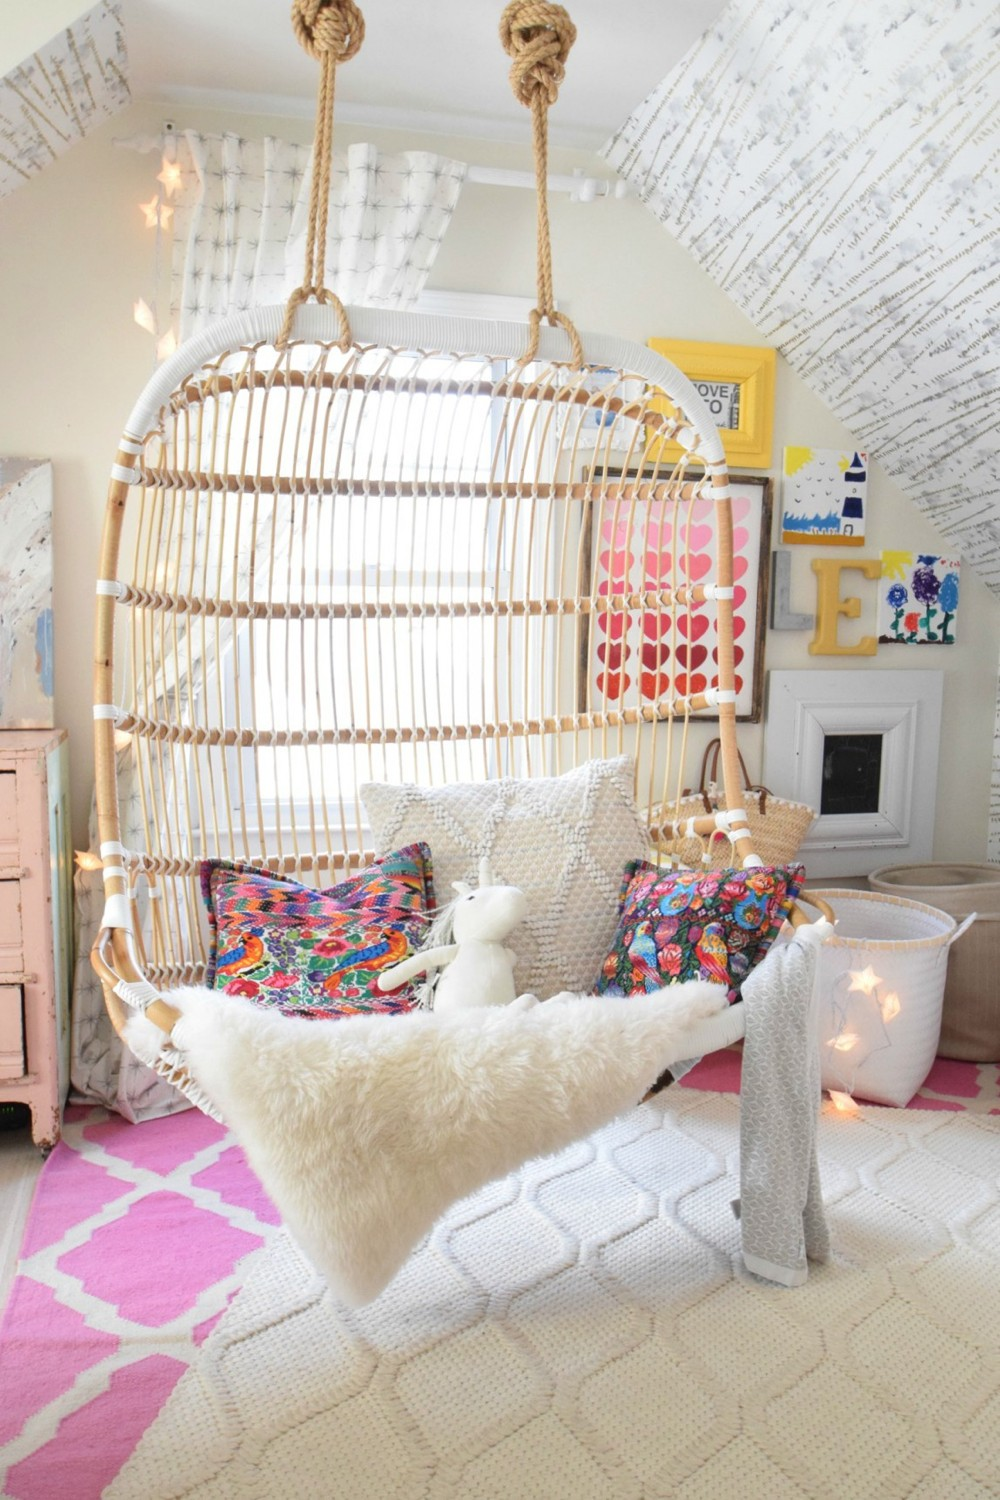 23 stylish teen girl s bedroom ideas homelovr - Cute bedroom ideas for tweens ...